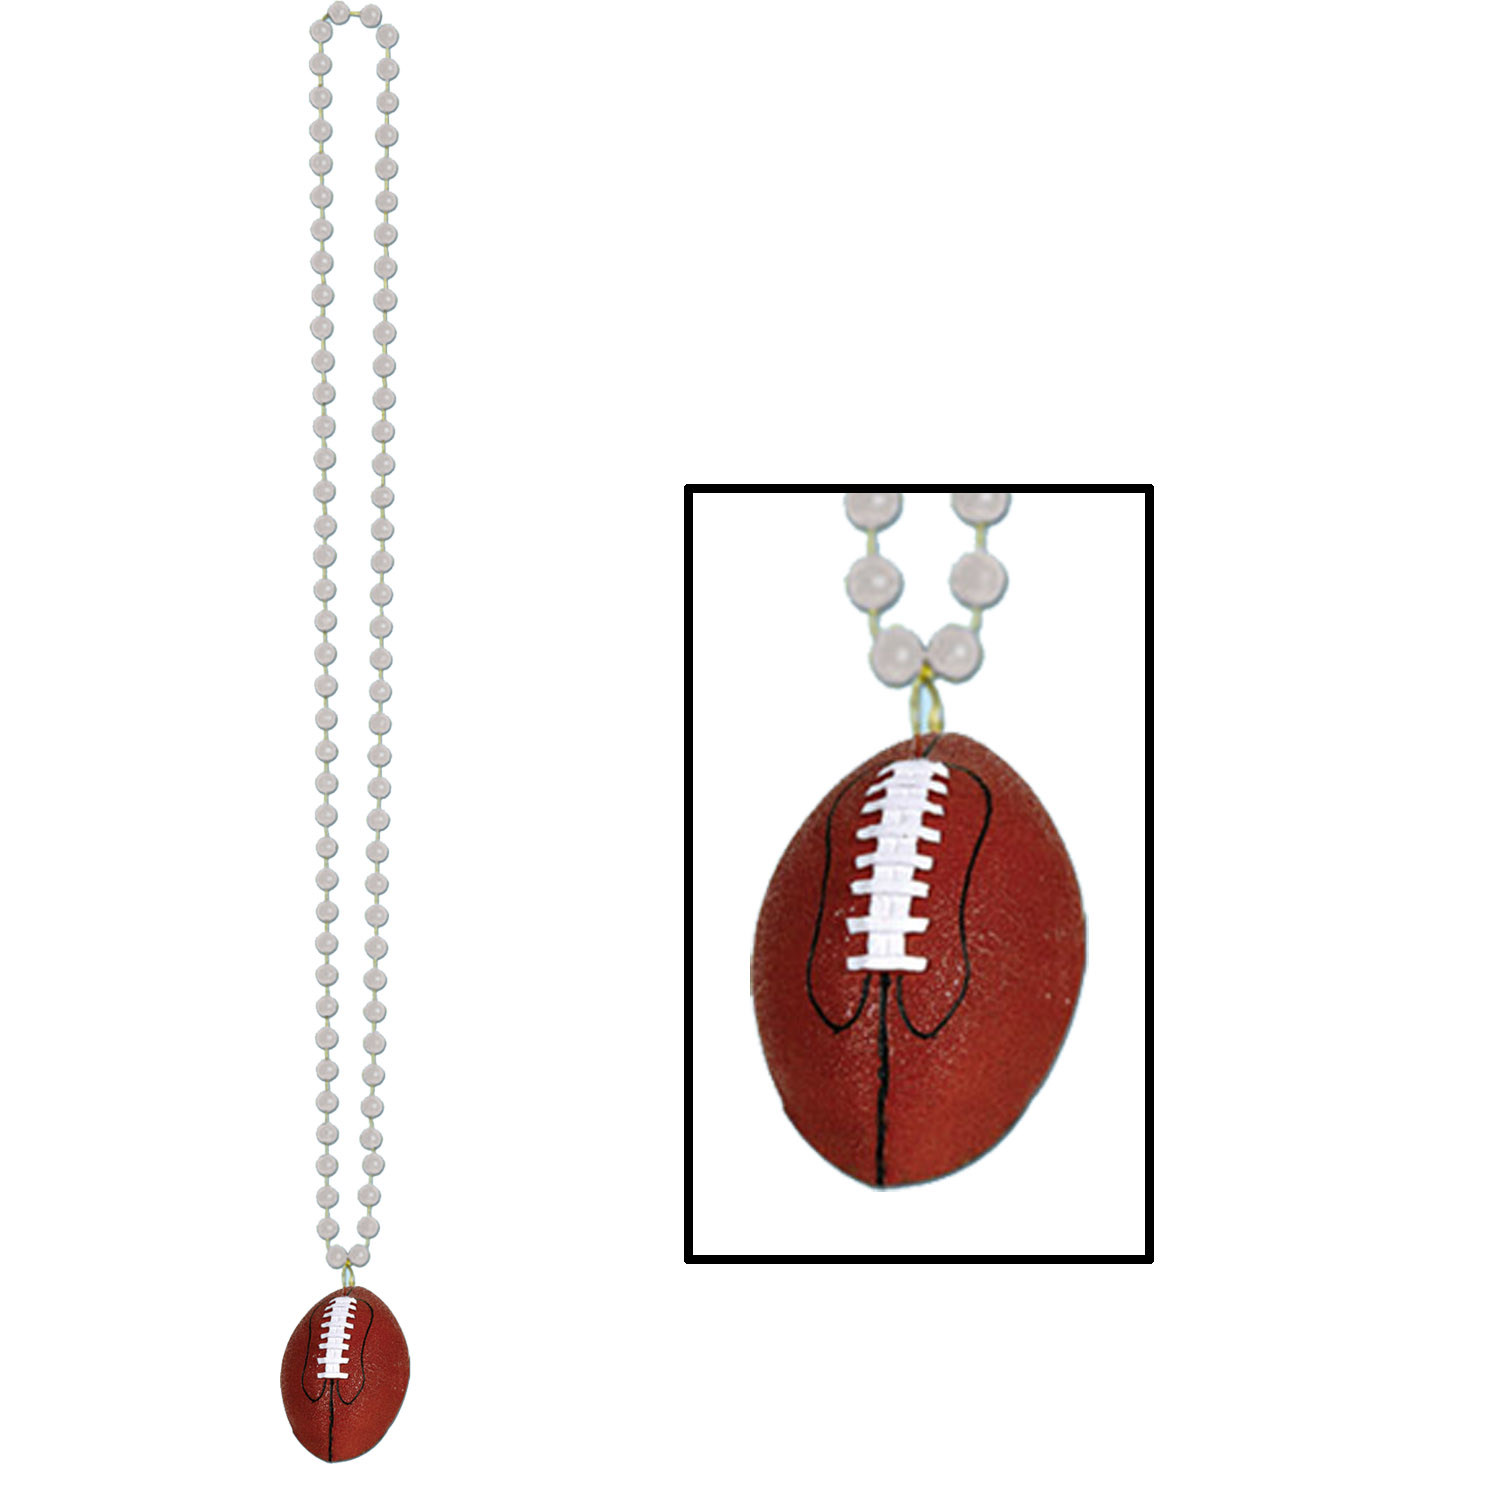 Beads w/Football Medallion (Pack of 12) Beads with Football Medallion, party favor, football, big game, wholesale, inexpensive, bulk